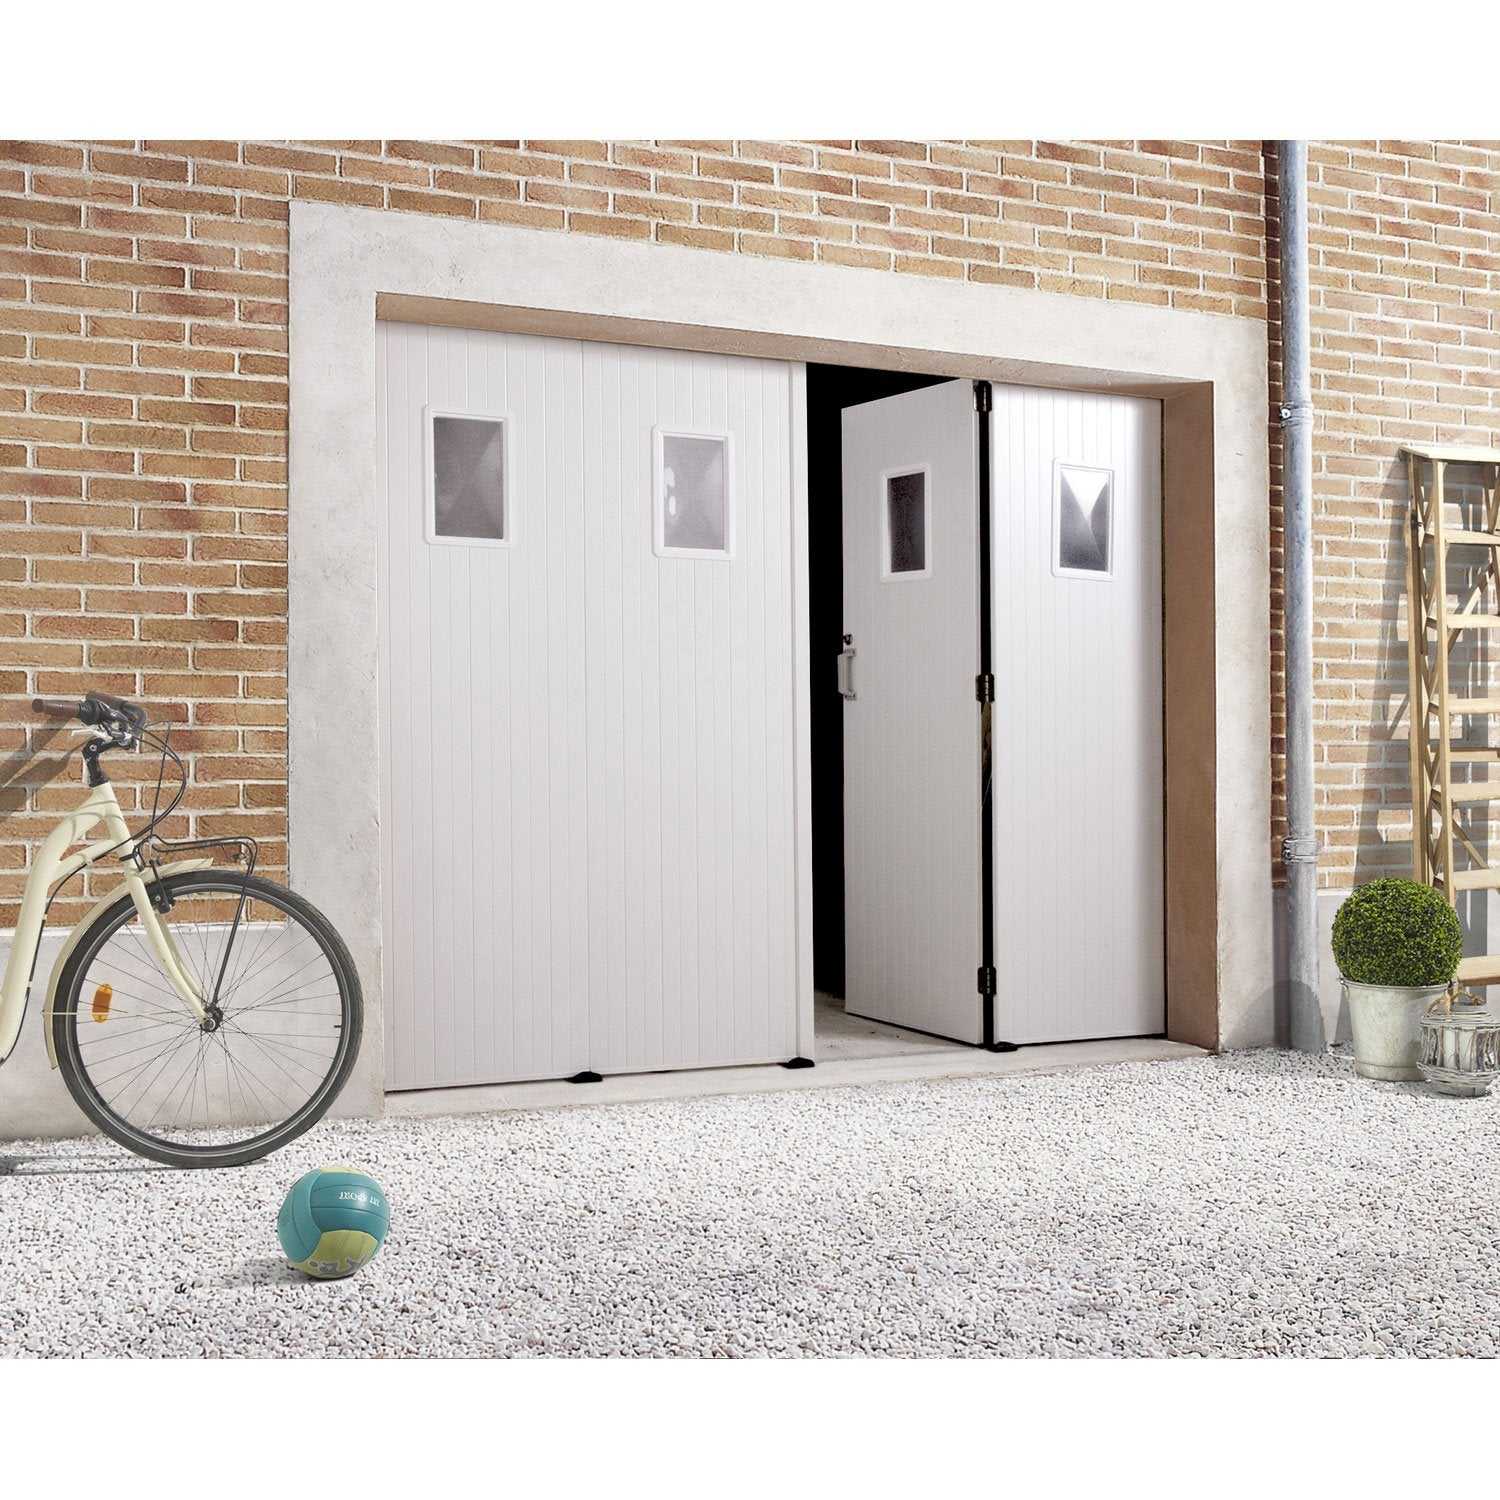 Amenagement garage leroy merlin pm94 jornalagora for Ouverture de garage